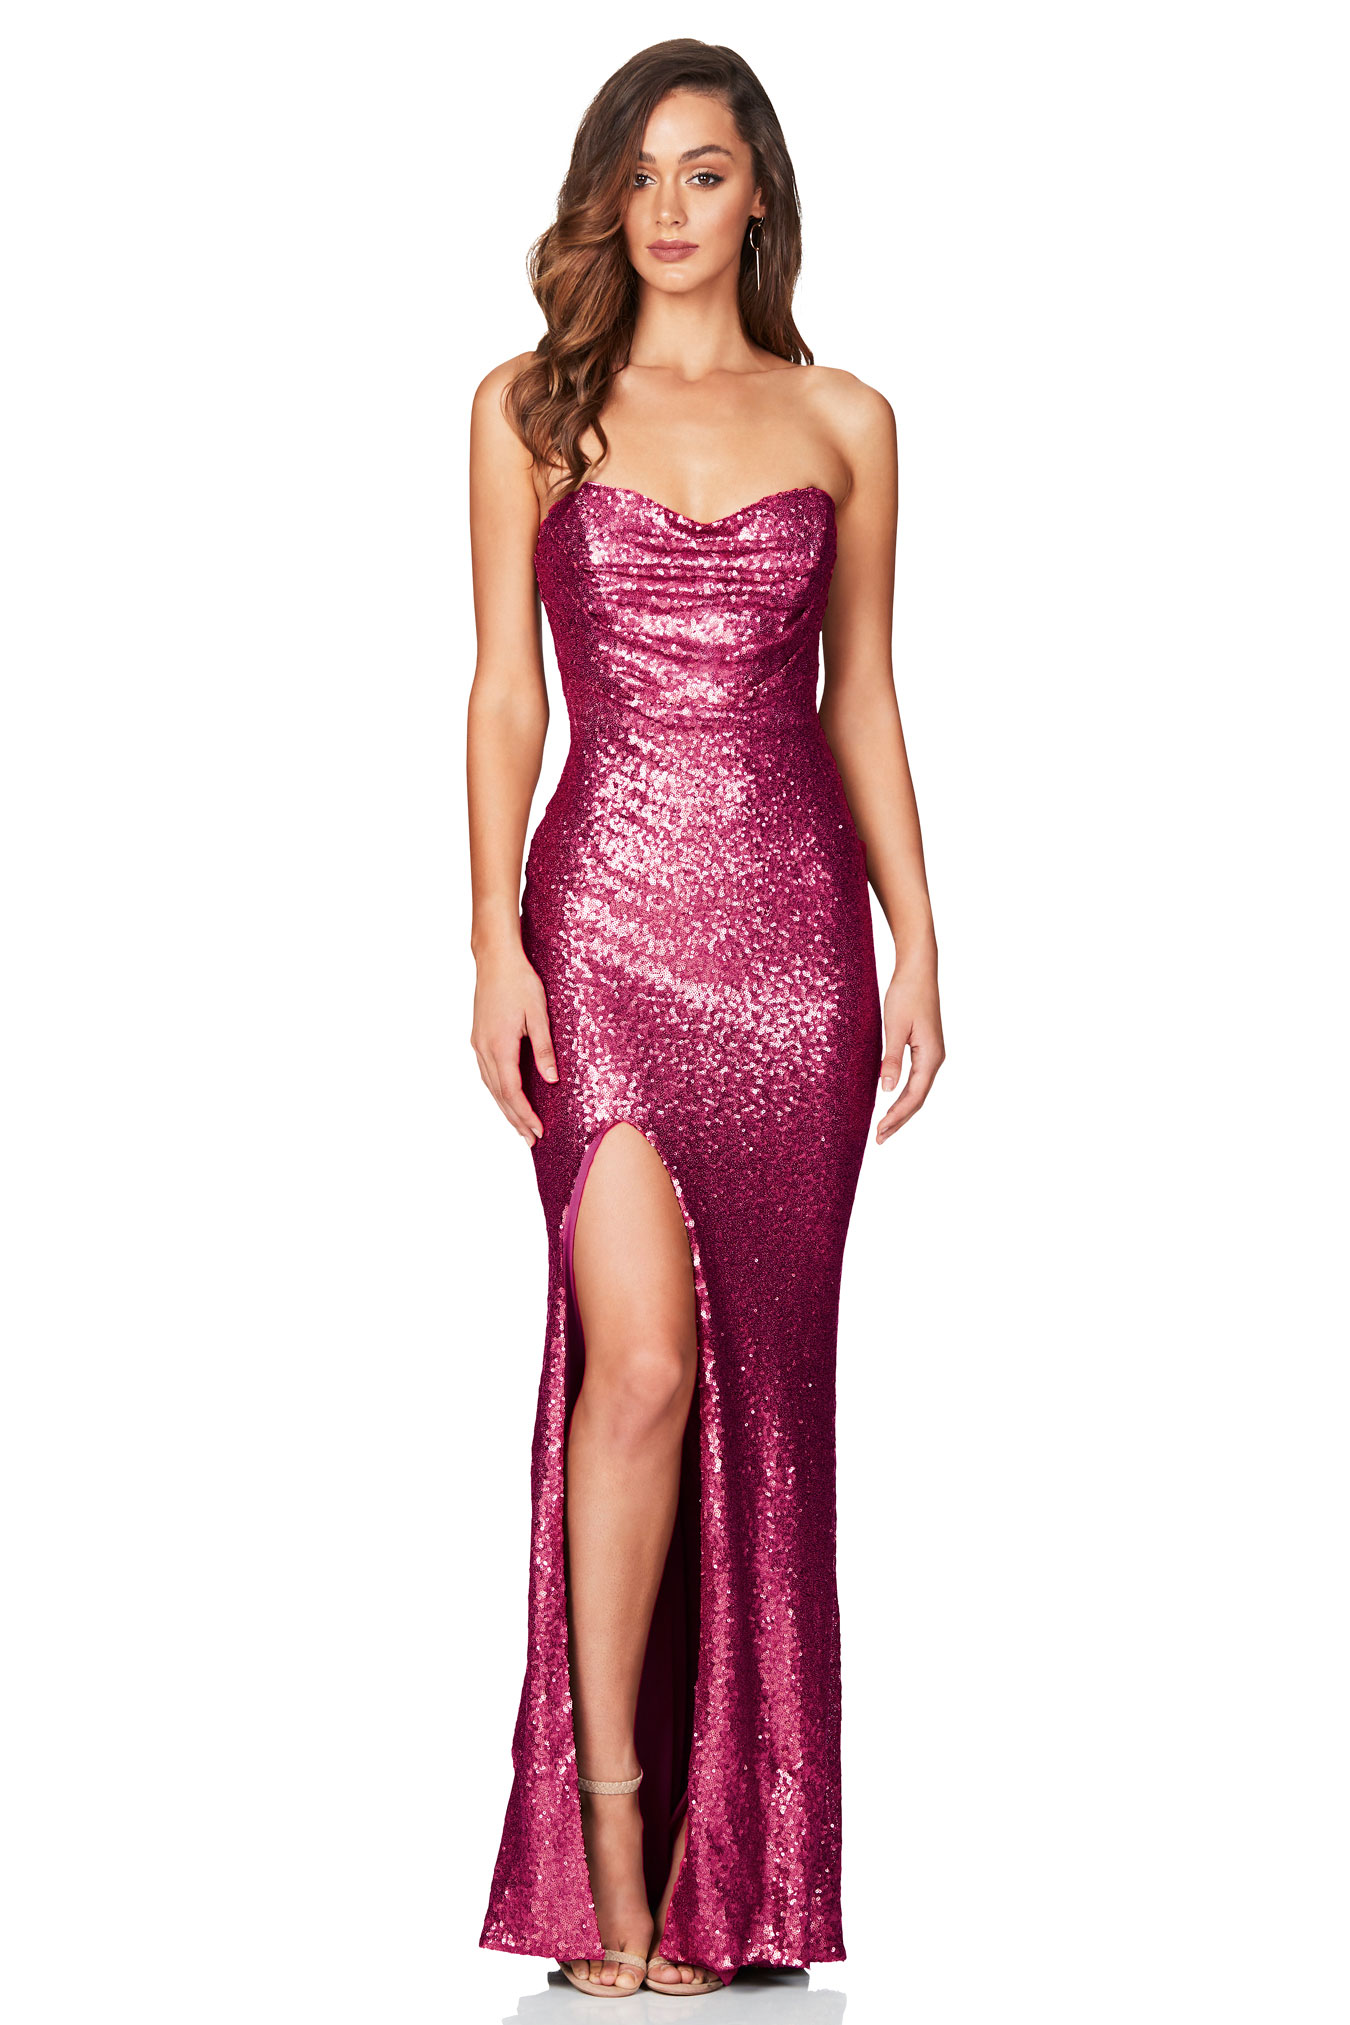 Ruby Valentina Gown Buy Designer Dresses Online At Nookie